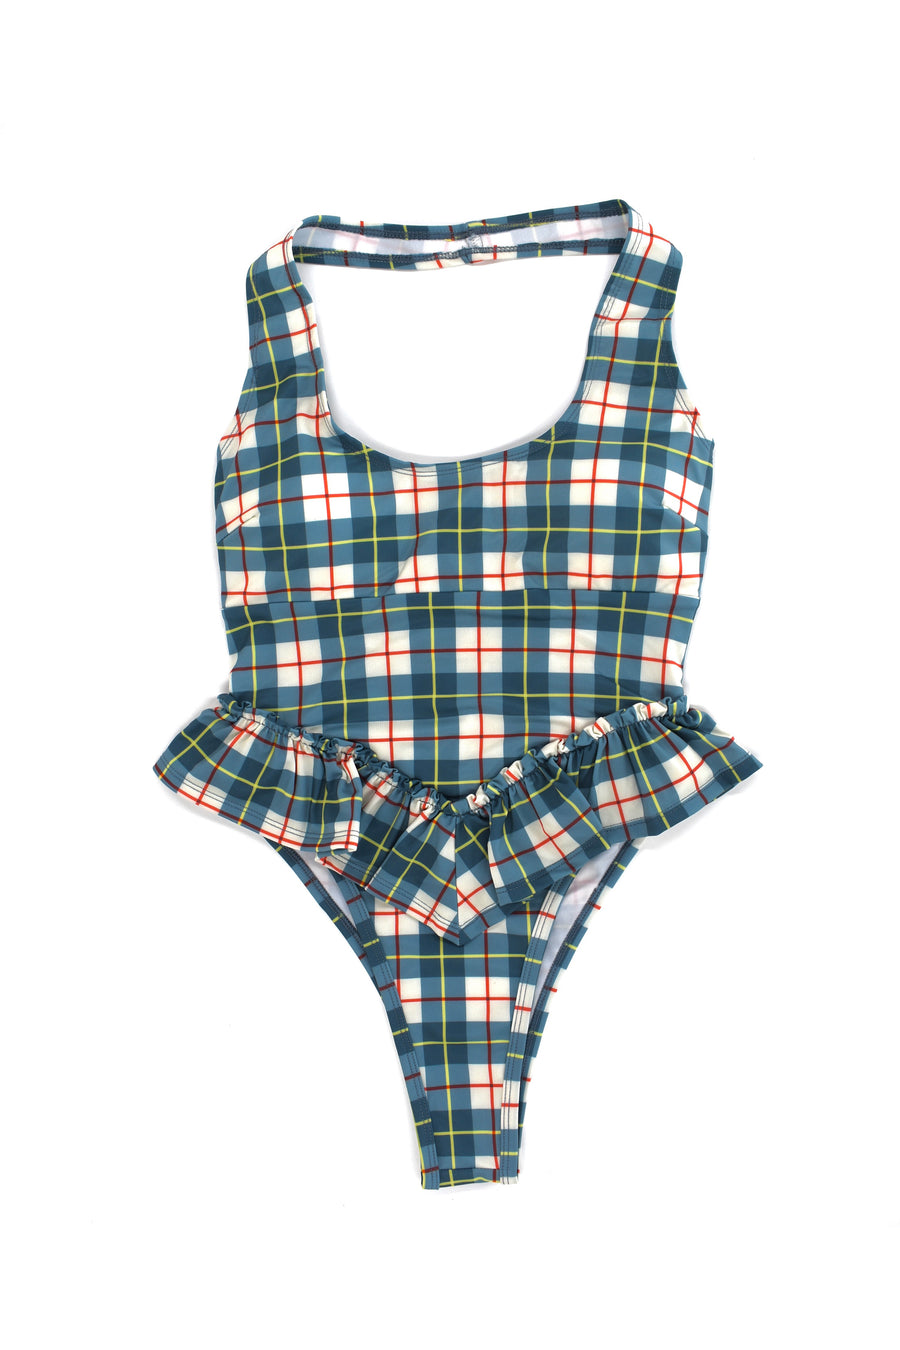 7 left - Plaid Halter Swimsuit